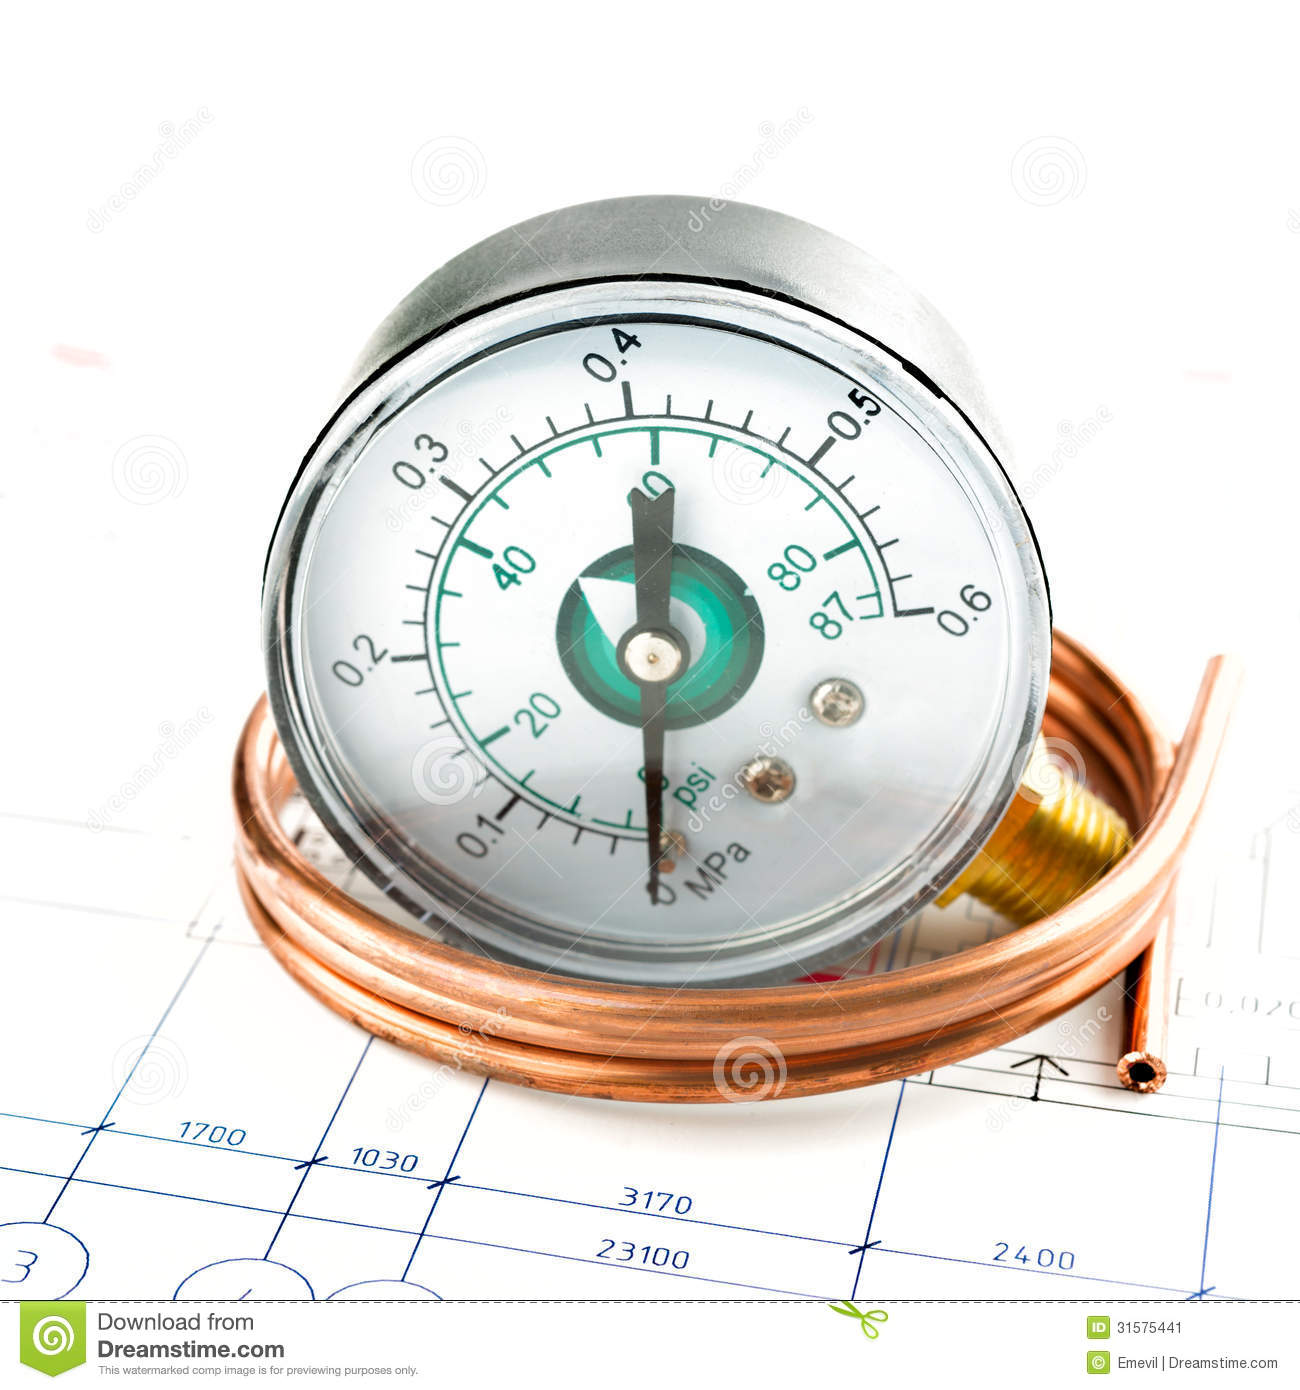 Pressure Measuring Instruments : Pressure measure tools stock image